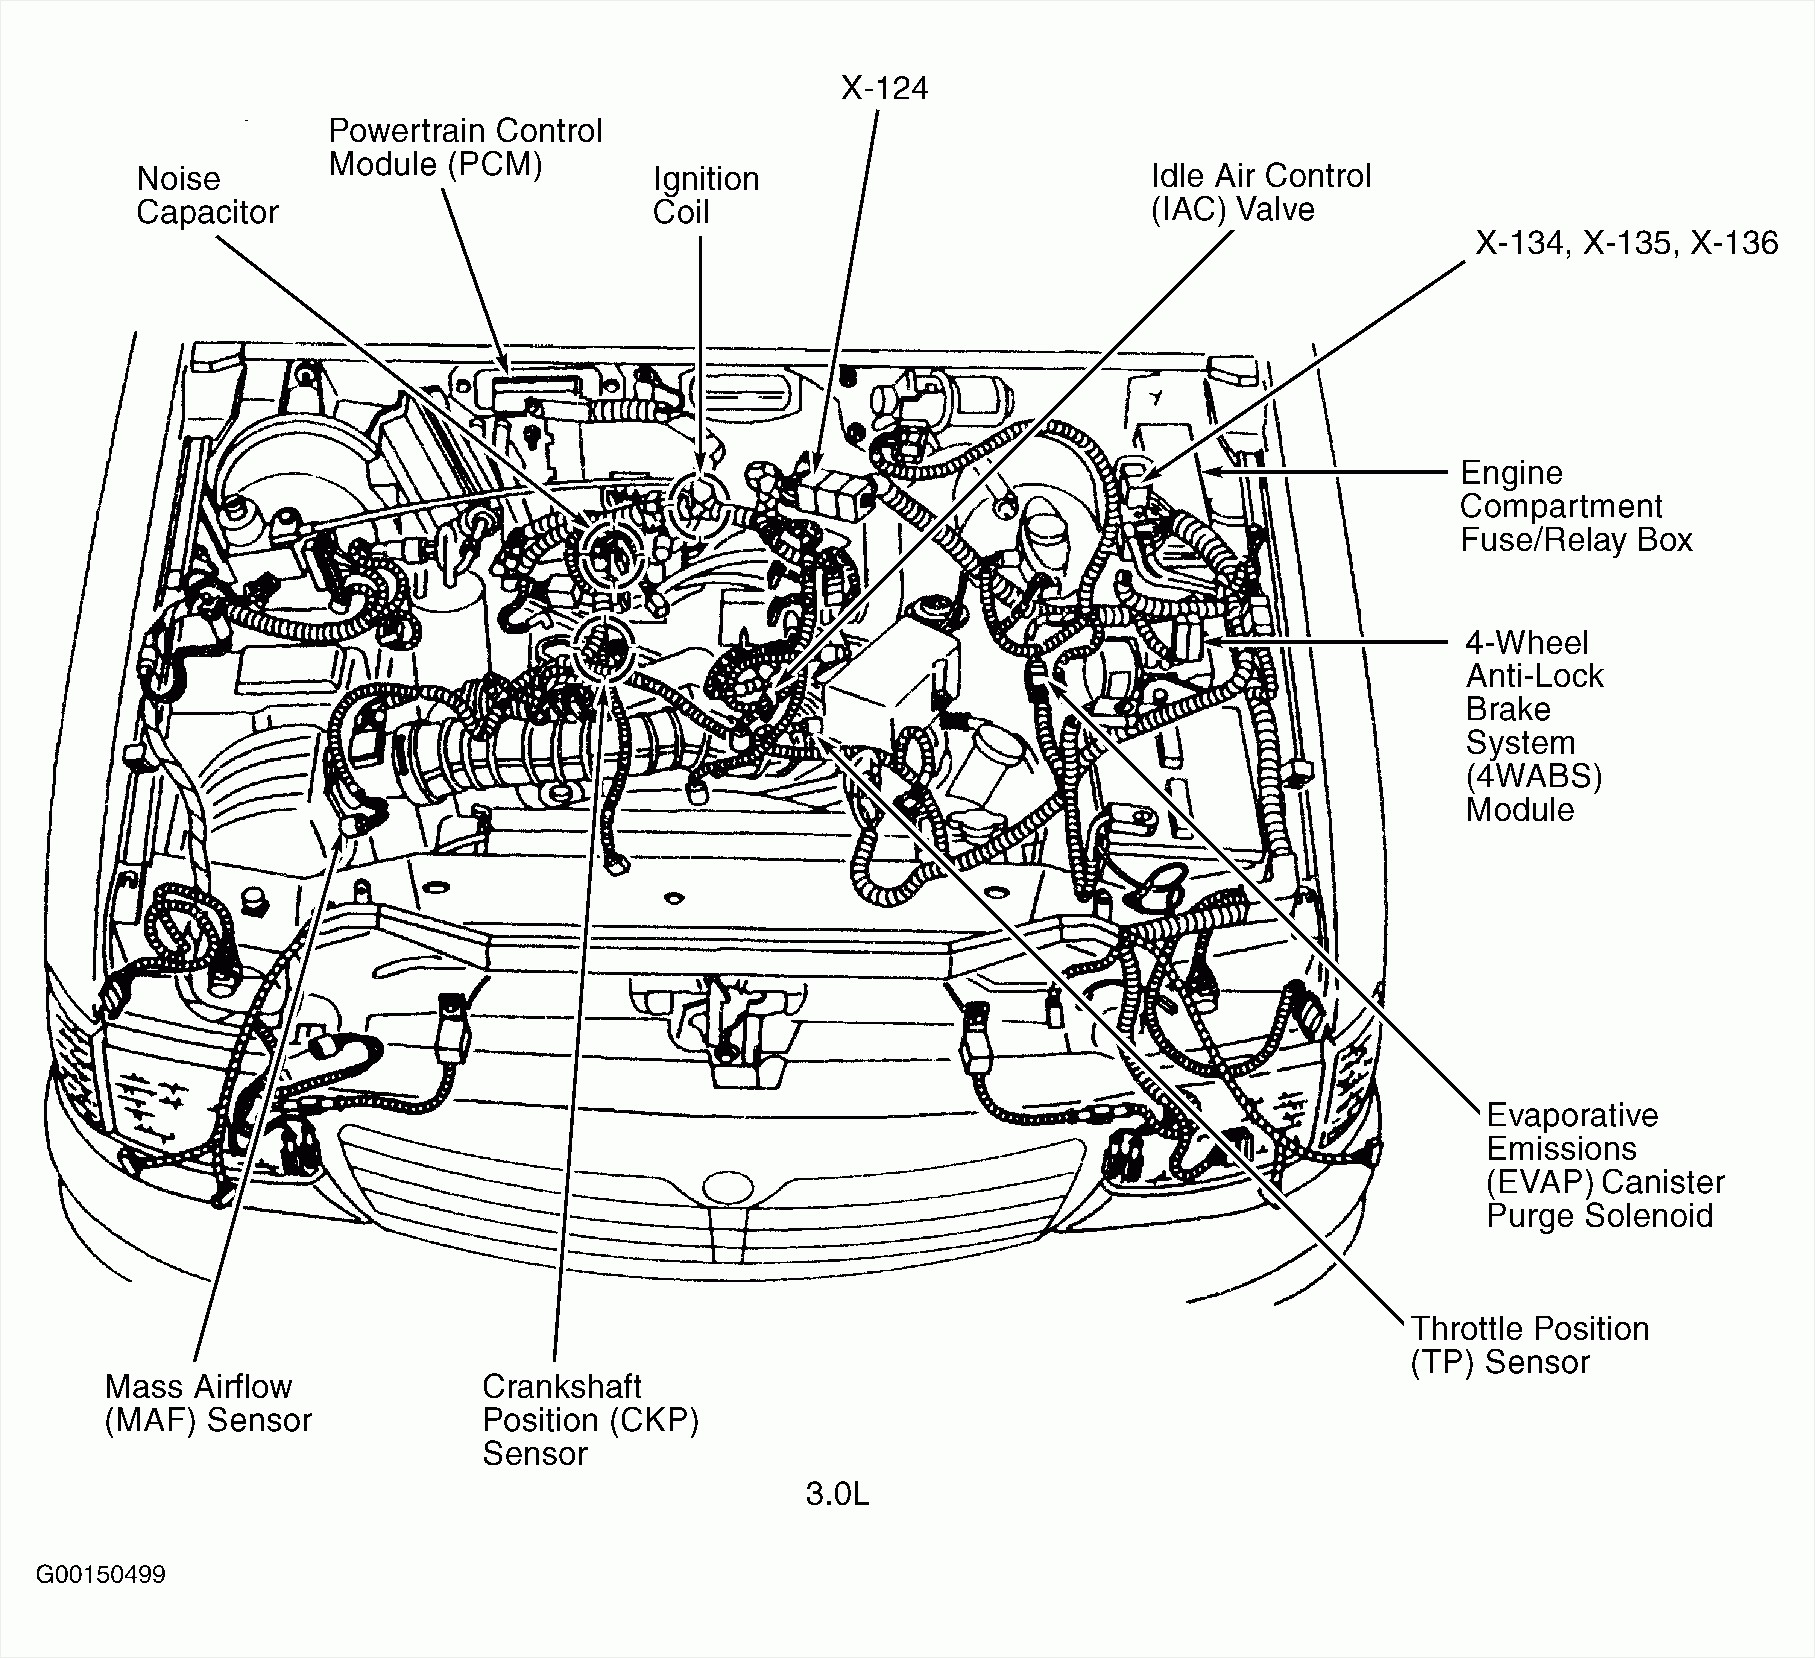 2001 bmw x5 engine bay diagram wiring diagram ops 1994 BMW 325I Engine Diagram